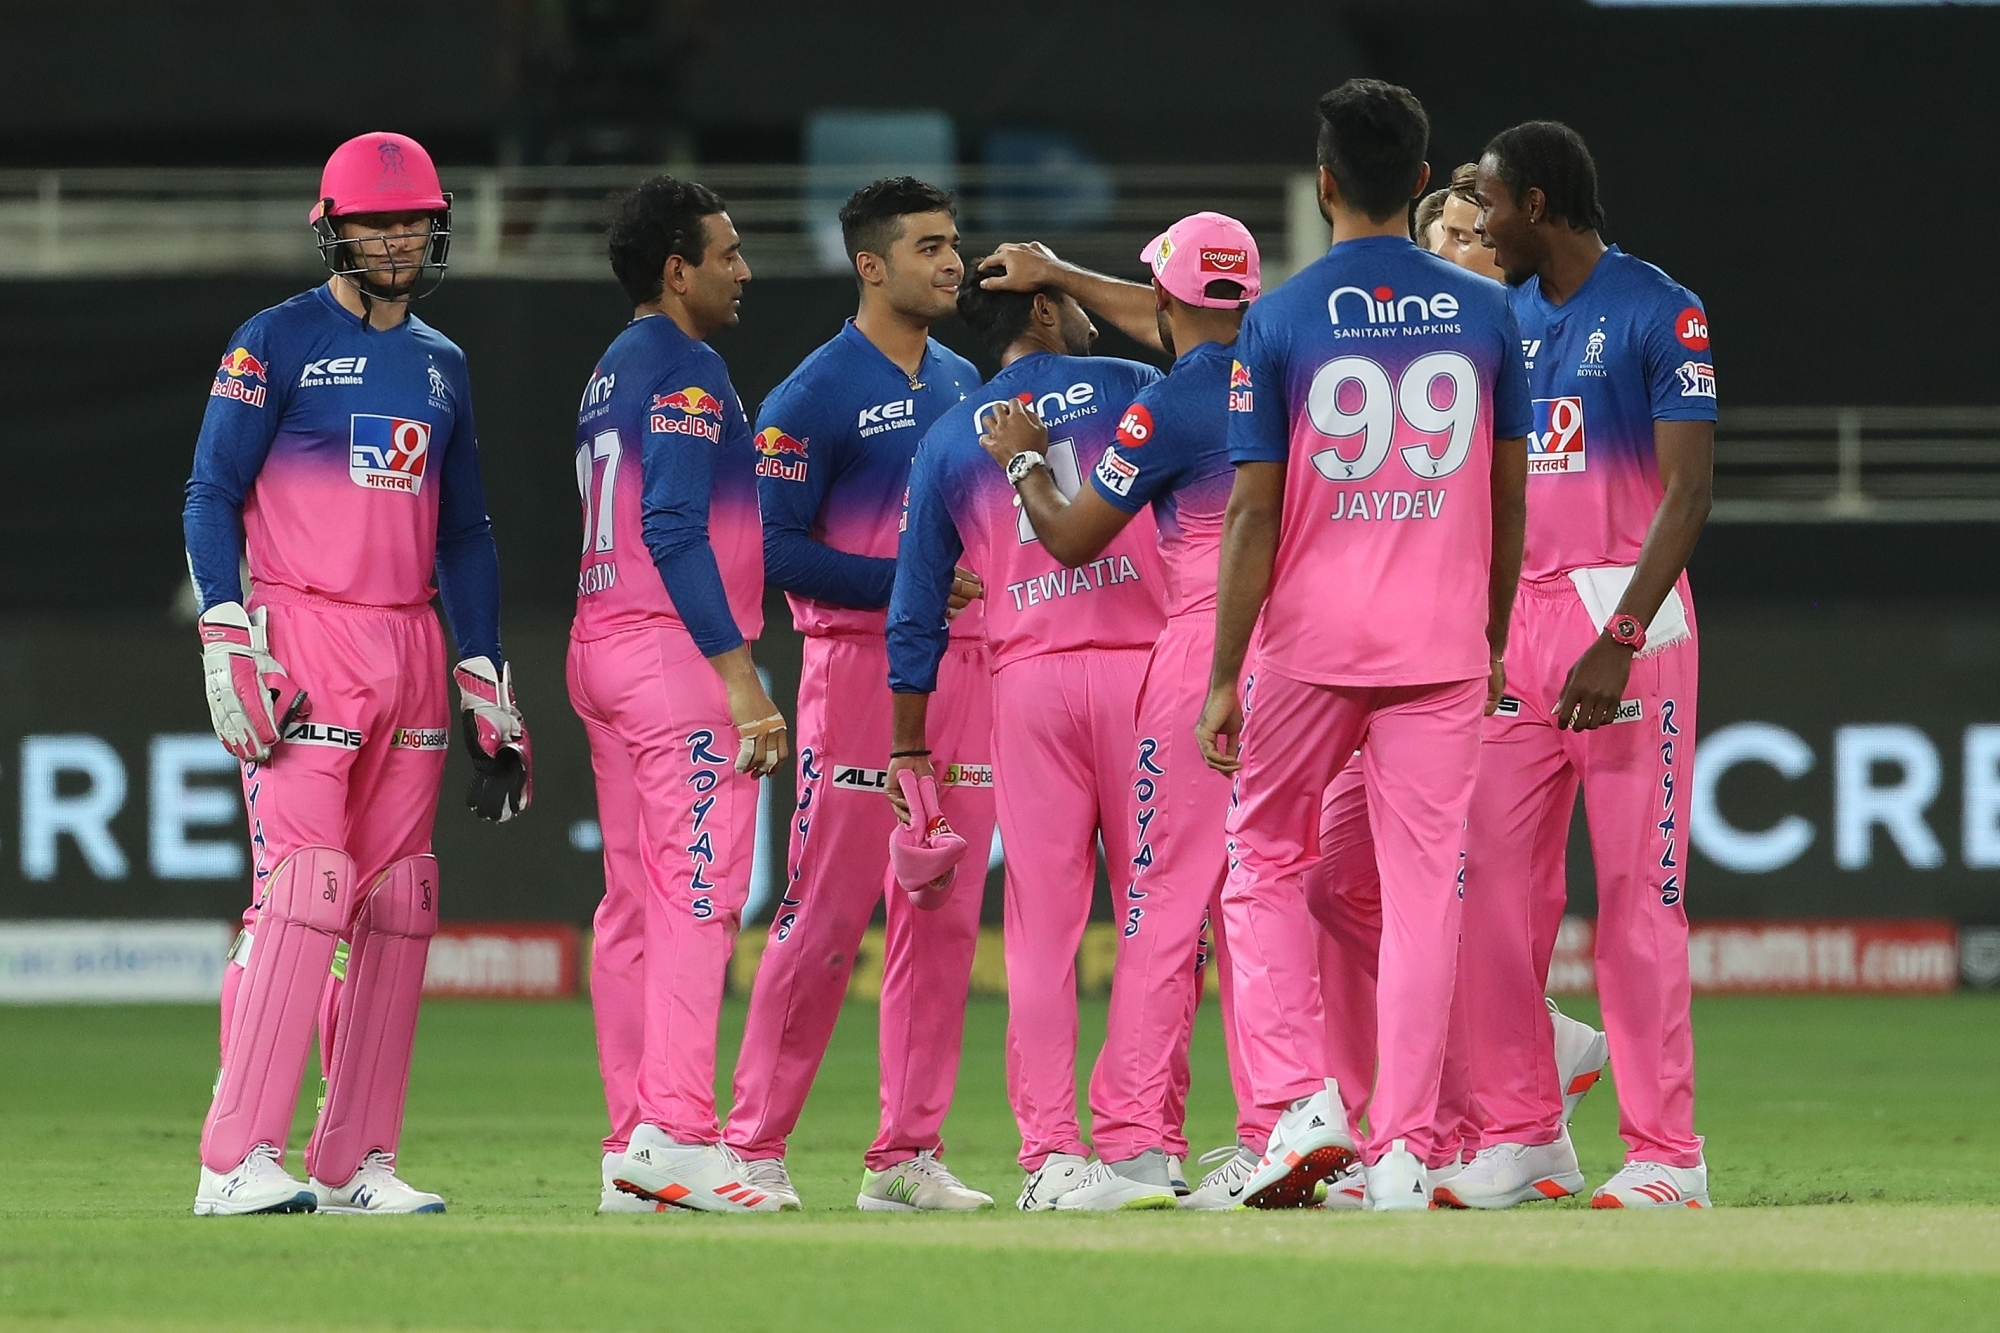 Rajasthan Royals had a poor outing in IPL 2020 | BCCI/IPL